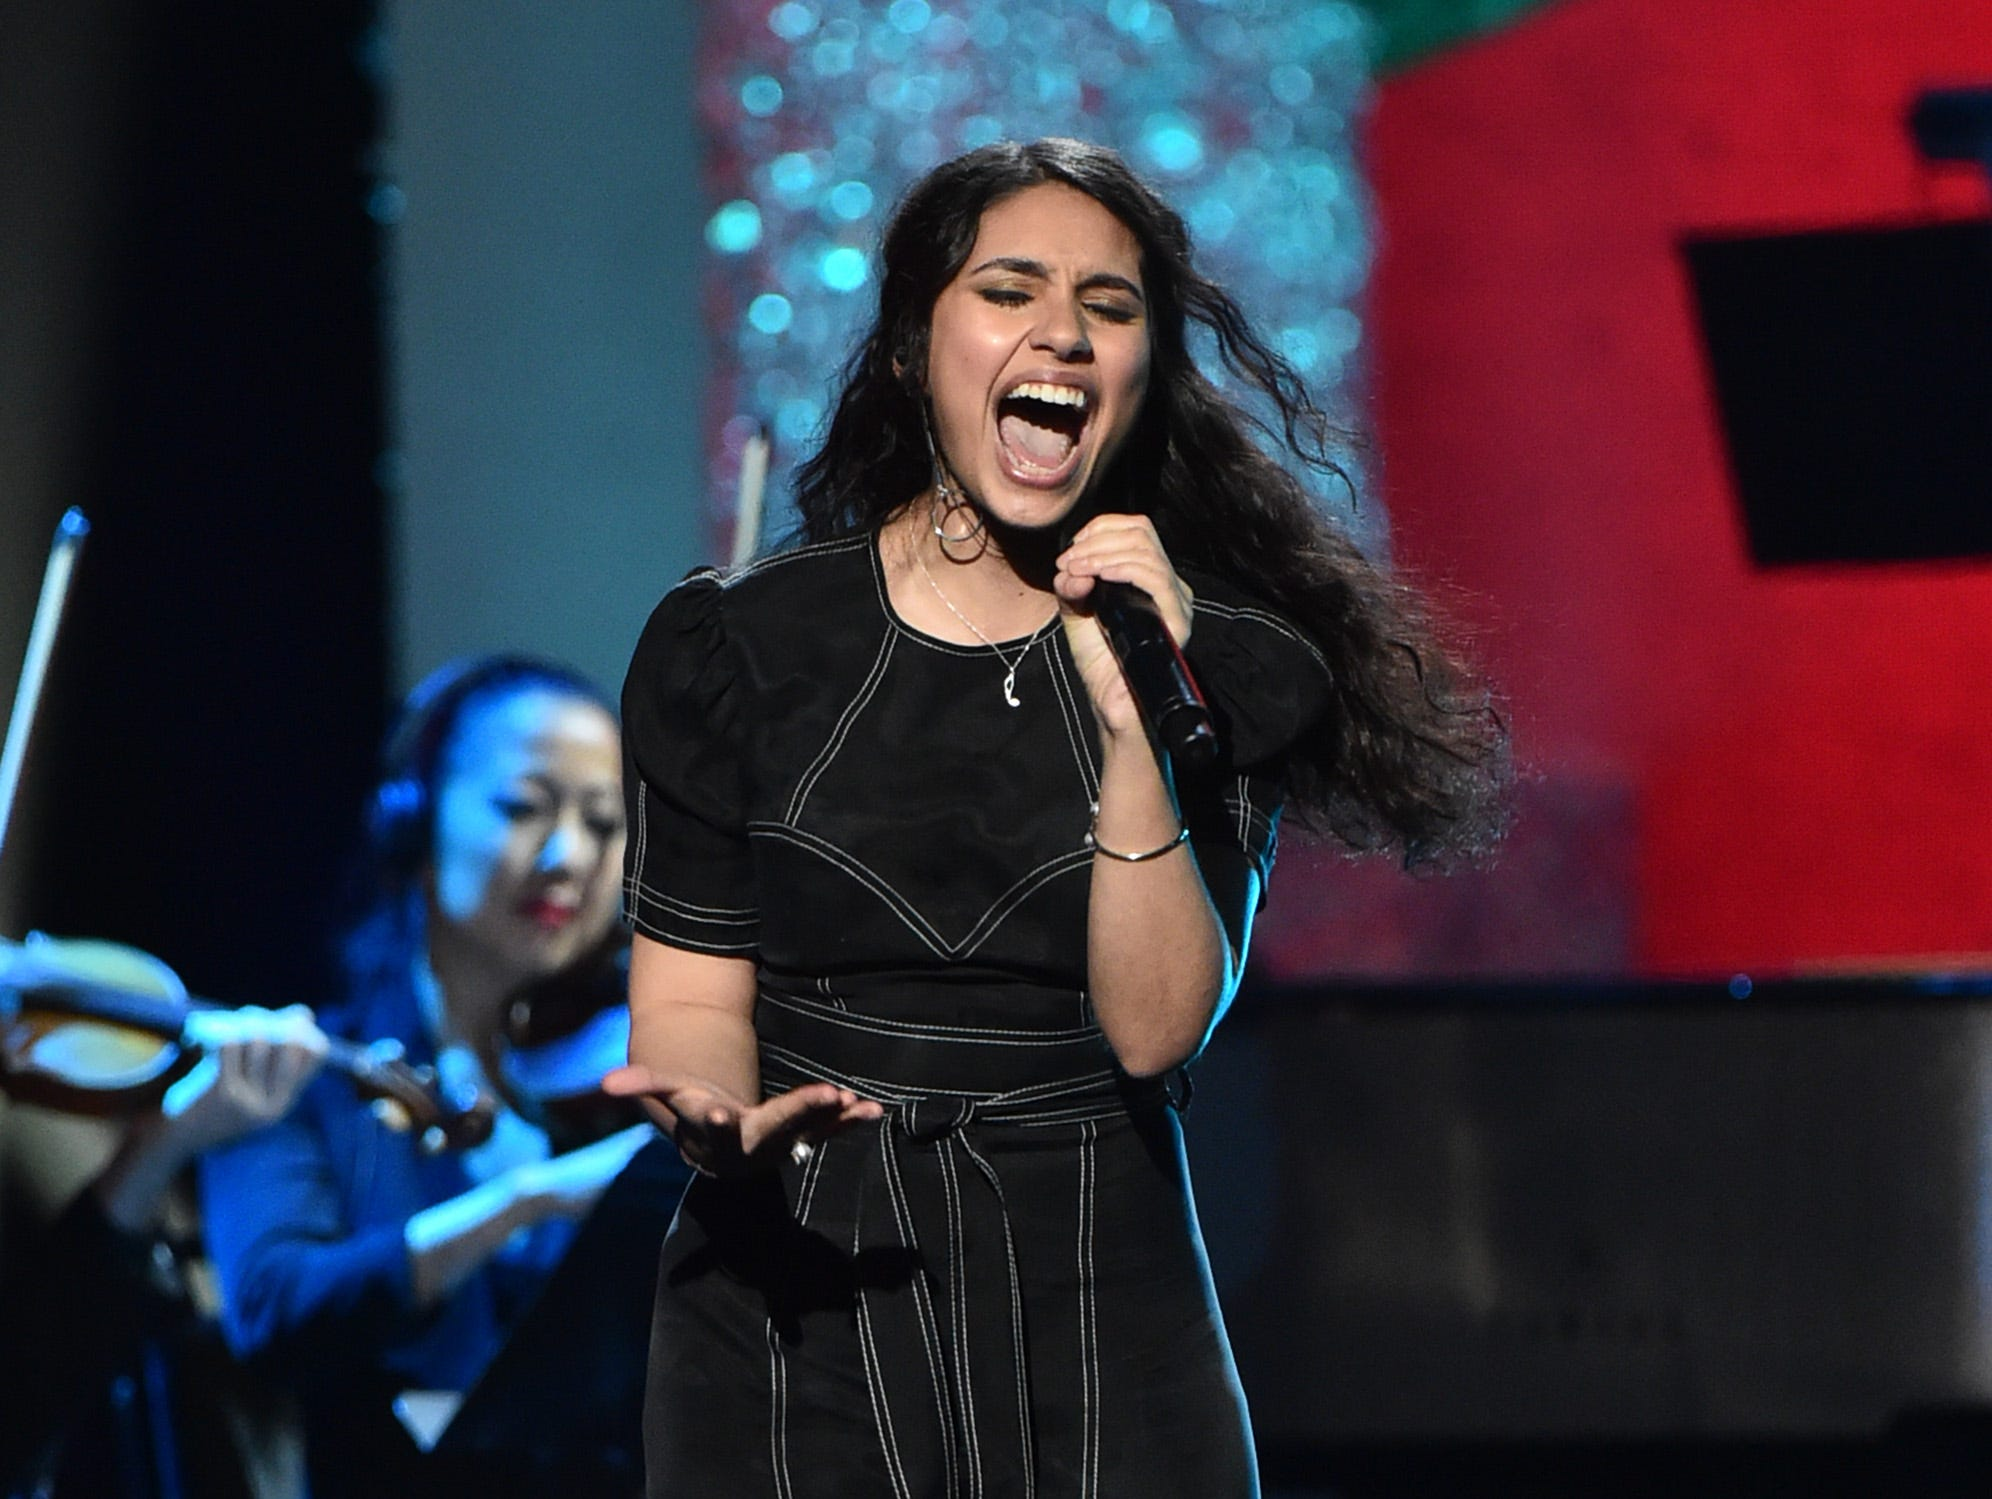 """LOS ANGELES, CA - JANUARY 13:  Alessia Cara performs at """"Aretha! A Grammy Celebration For the Queen Of Soul"""" at the Shrine Auditorium on Jan. 13, 2019, in Los Angeles, Calif."""